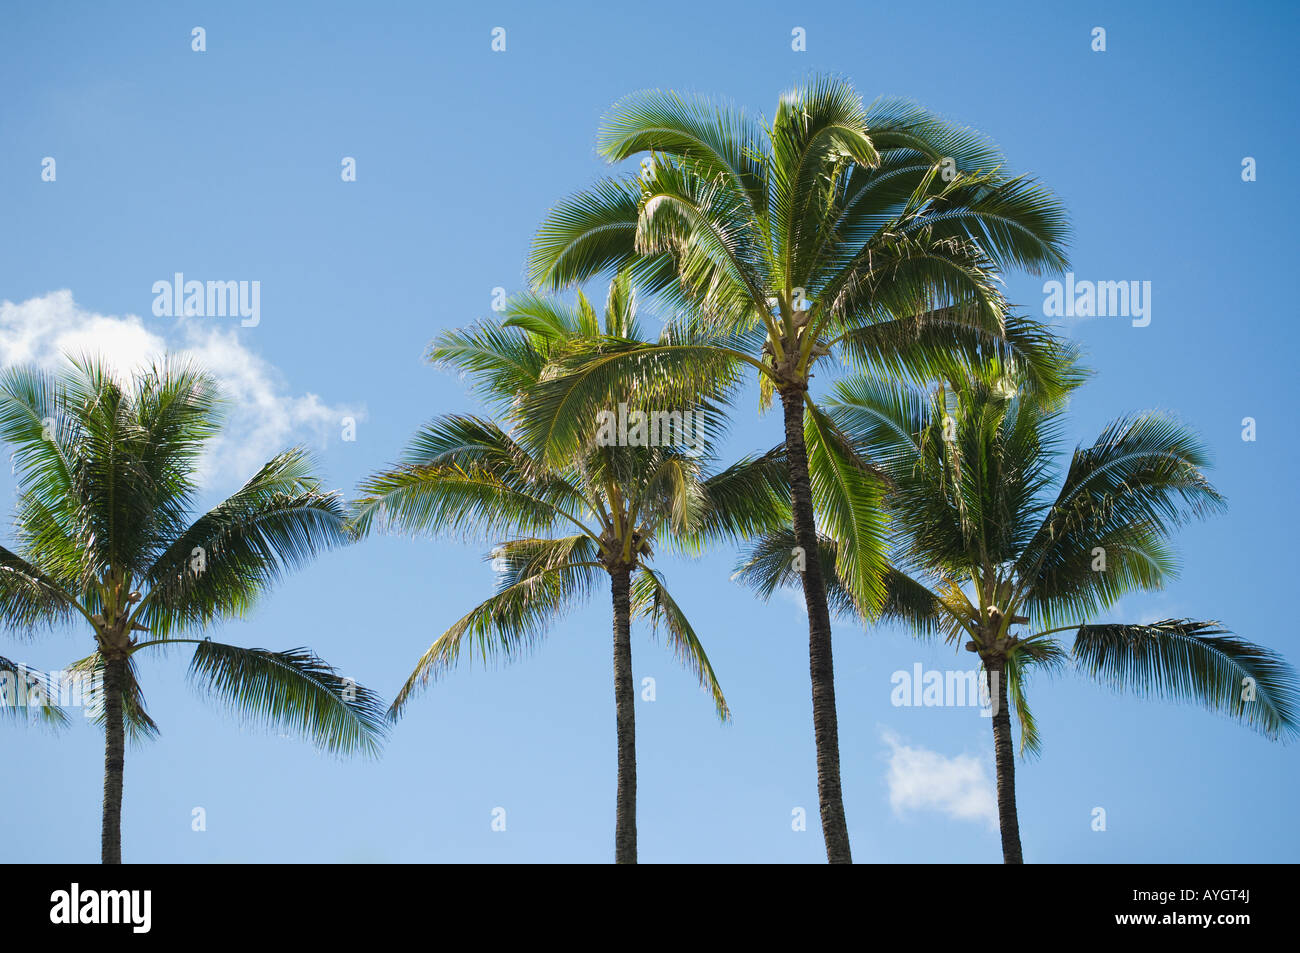 Low angle view of palm trees - Stock Image